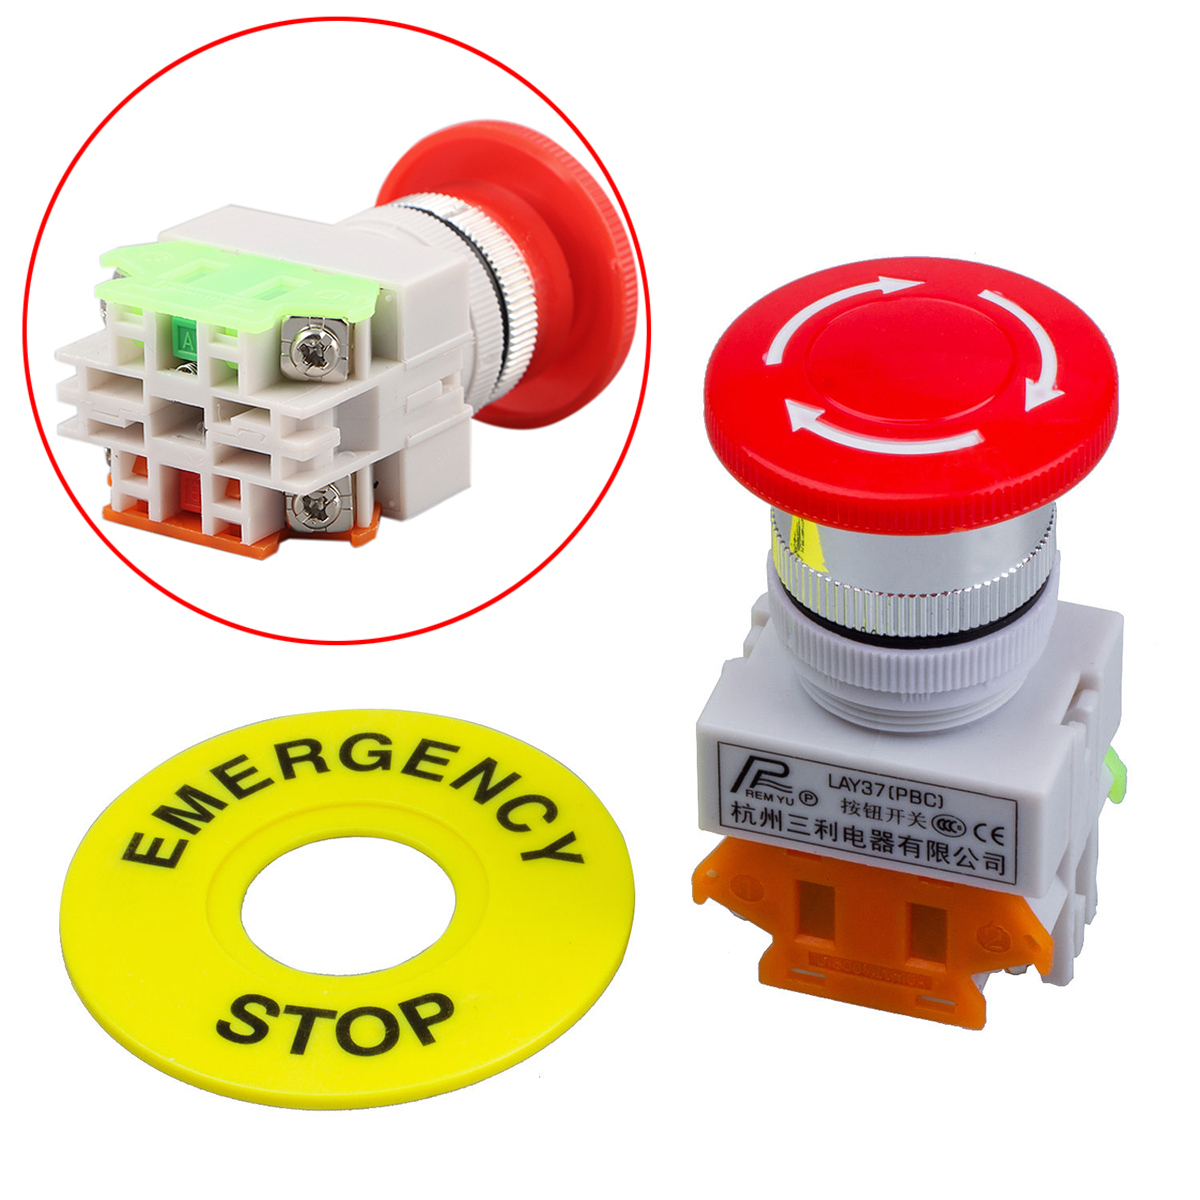 New Red Mushroom Cap Emergency Stop Switch 1NO 1NC DPST Push Button Switch AC 660V 10A стоимость